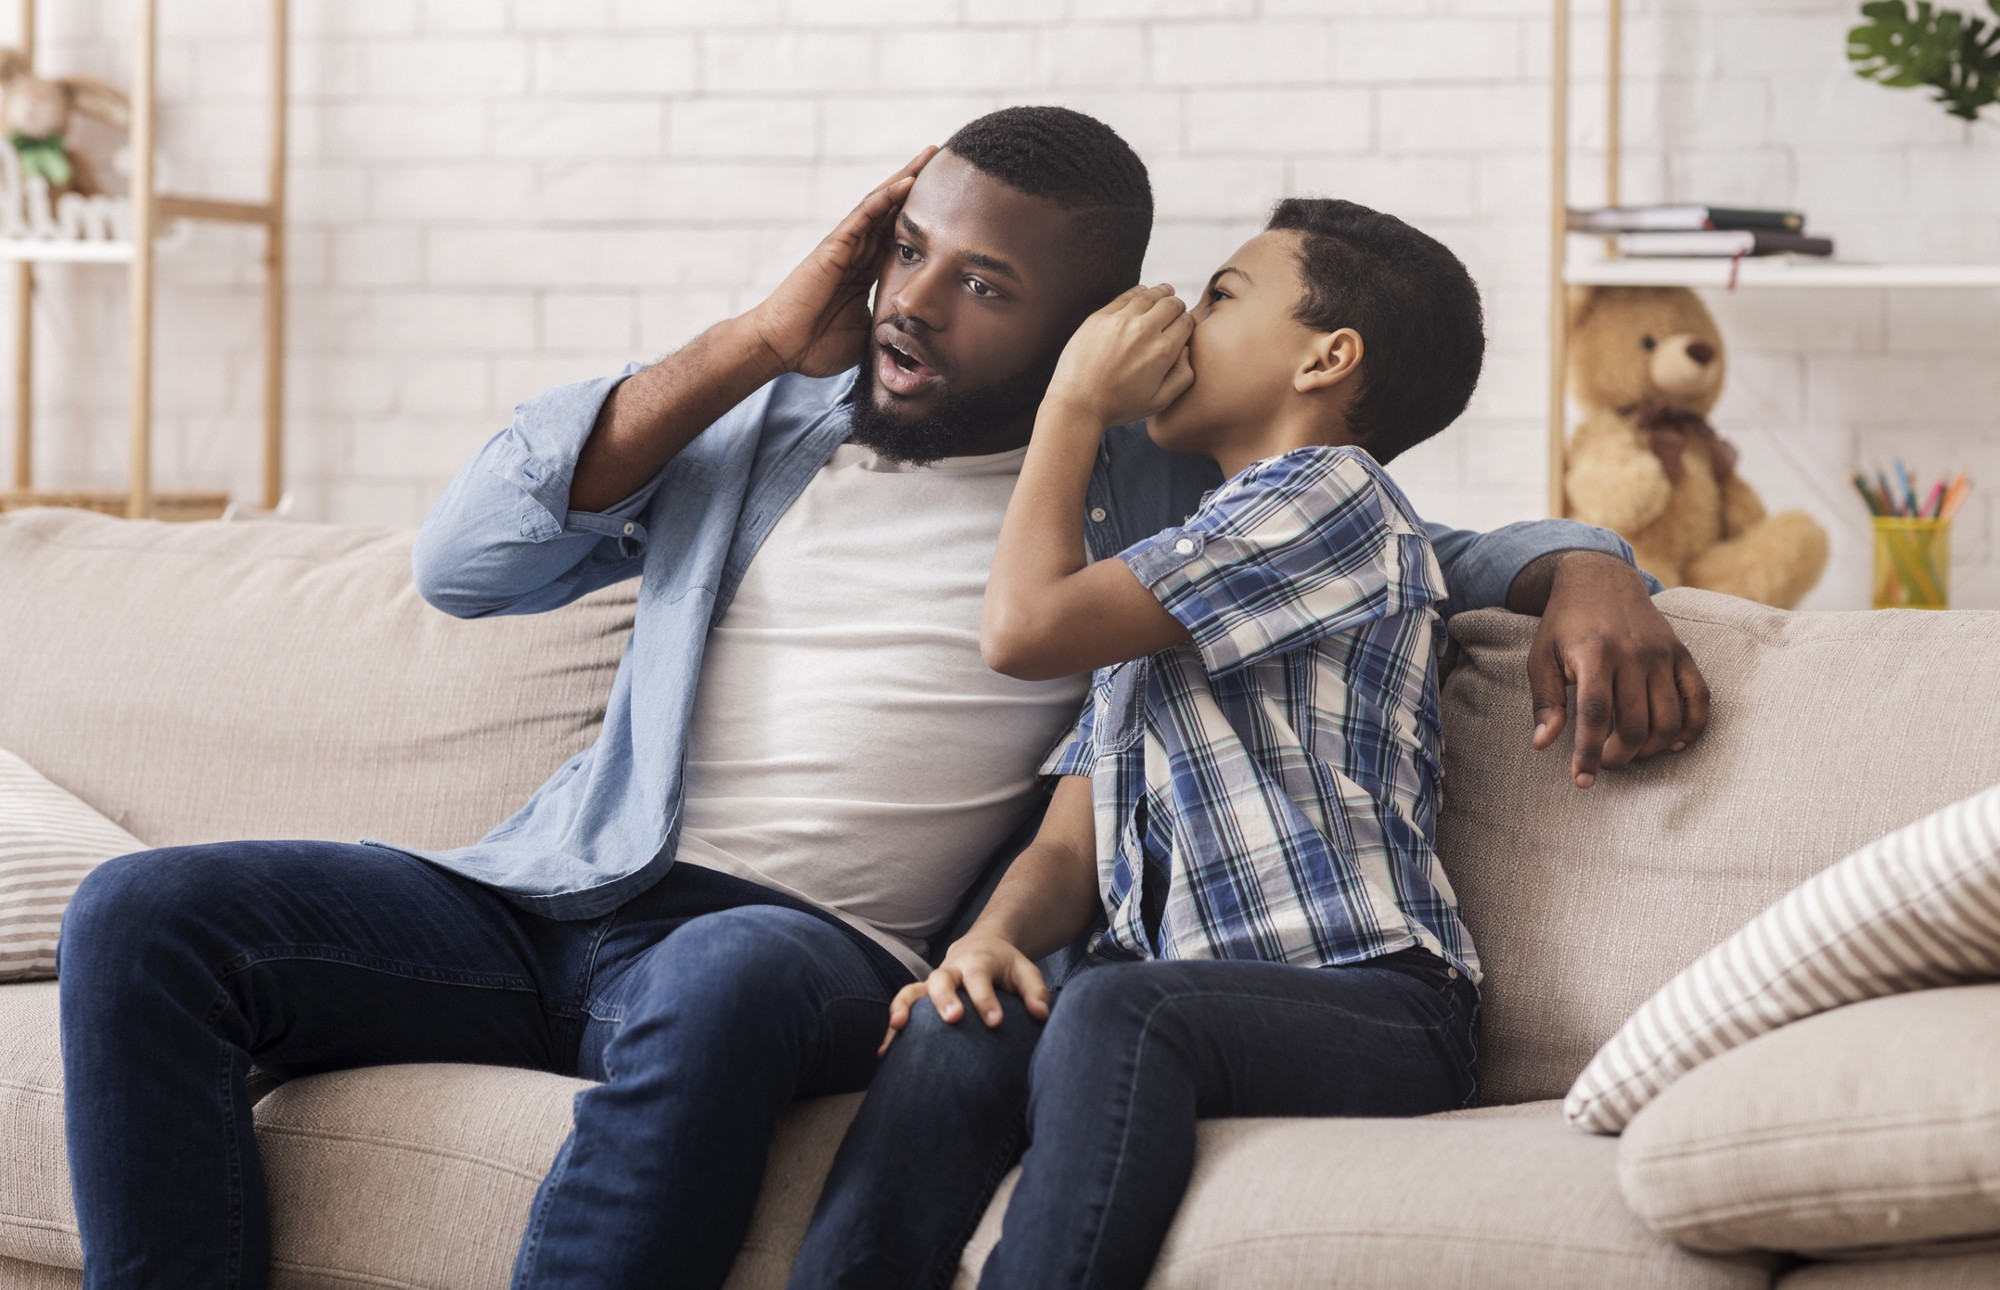 Little boy whispering into Dad's ear while sitting on couch.